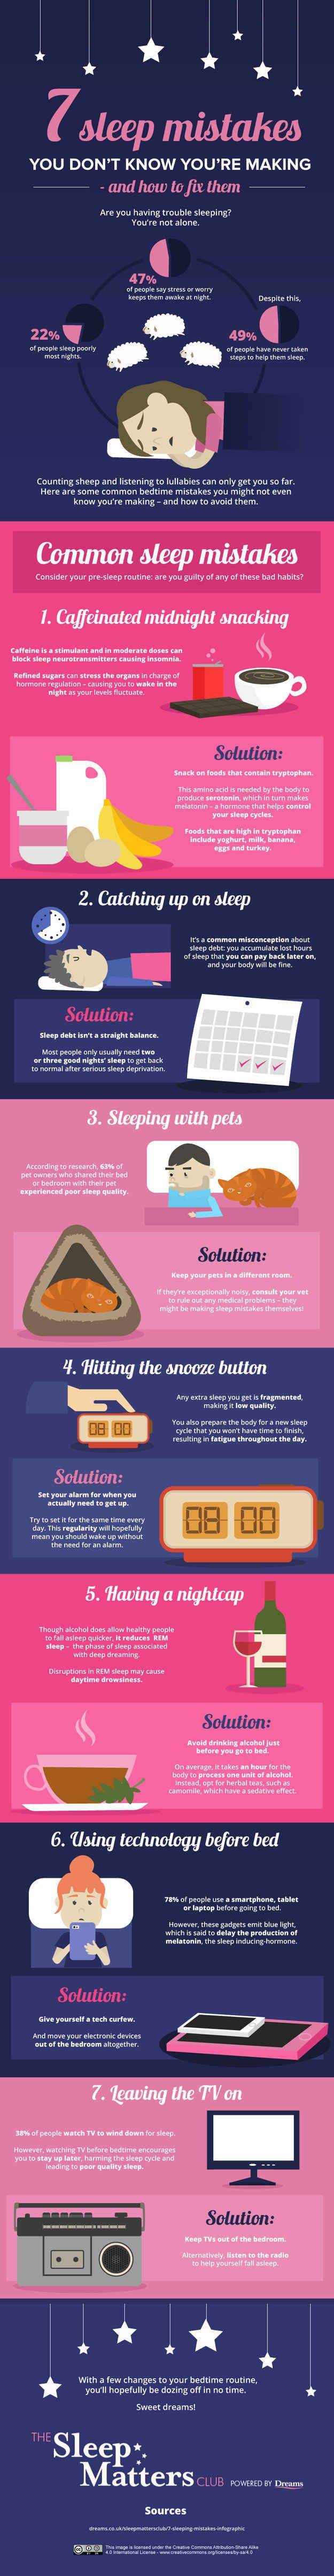 And avoid making these sleep mistakes if getting shut-eye is a problem for you #Infografía #Infographic